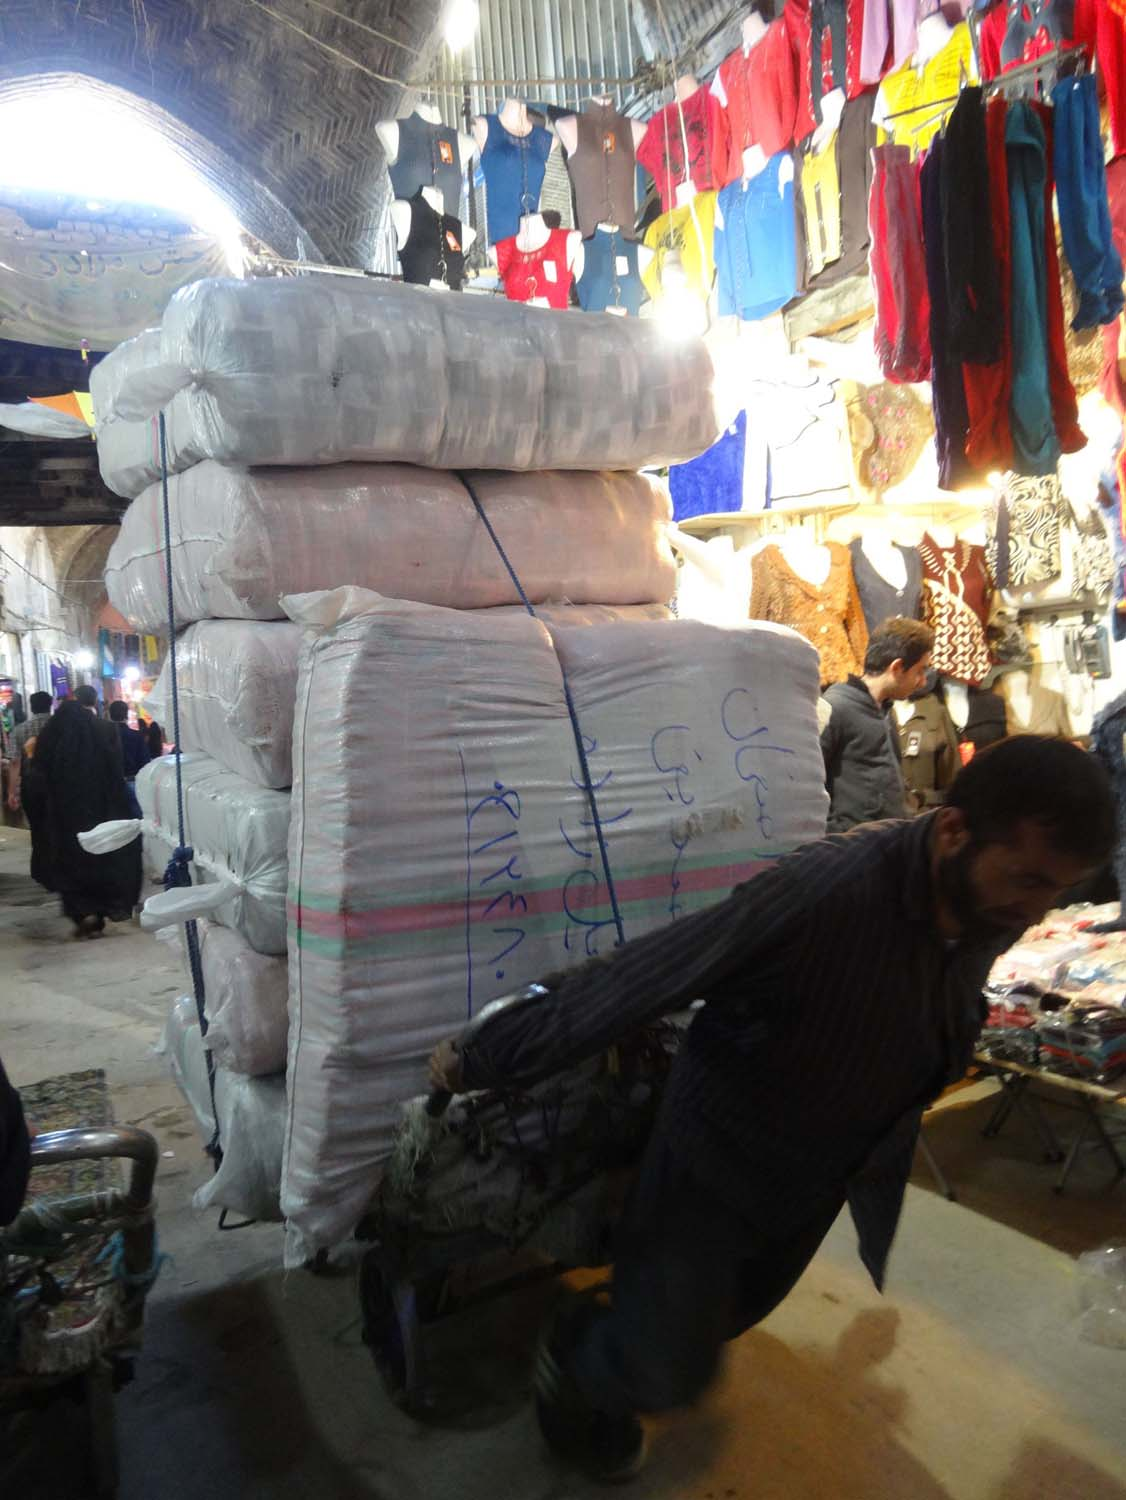 narrow streets in the bazaar means things are carted in by manpower